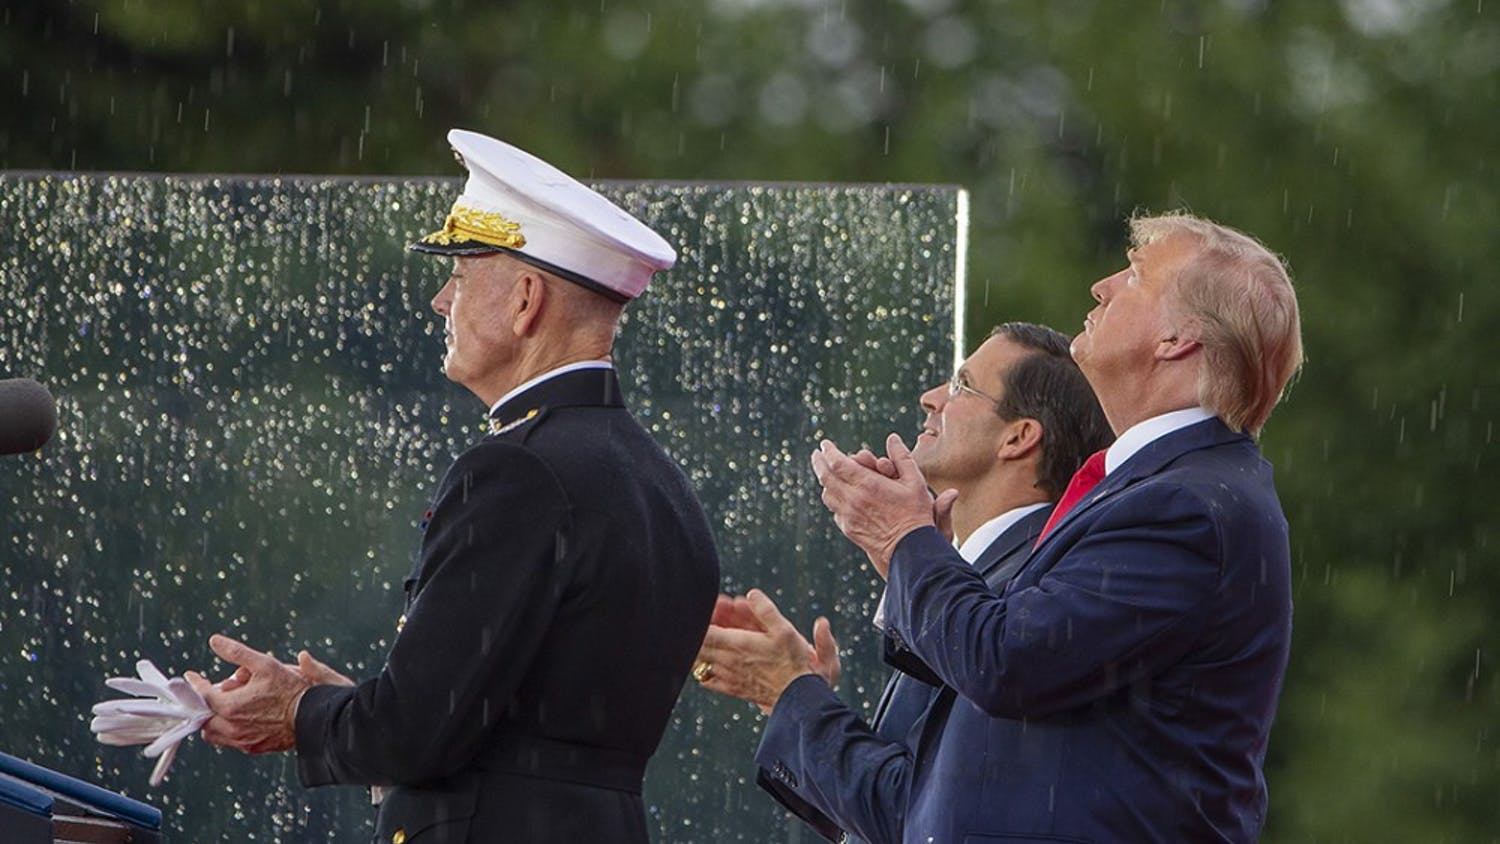 """President Donald Trump watches a flyover on Thursday, July 4, 2019, in Washington, D.C. Trump is holding a """"Salute to America"""" celebration on the National Mall on Independence Day with musical performances, a military displays, and fireworks. (Tasos Katopodis/Getty Images/TNS) **FOR USE WITH THIS STORY ONLY**"""